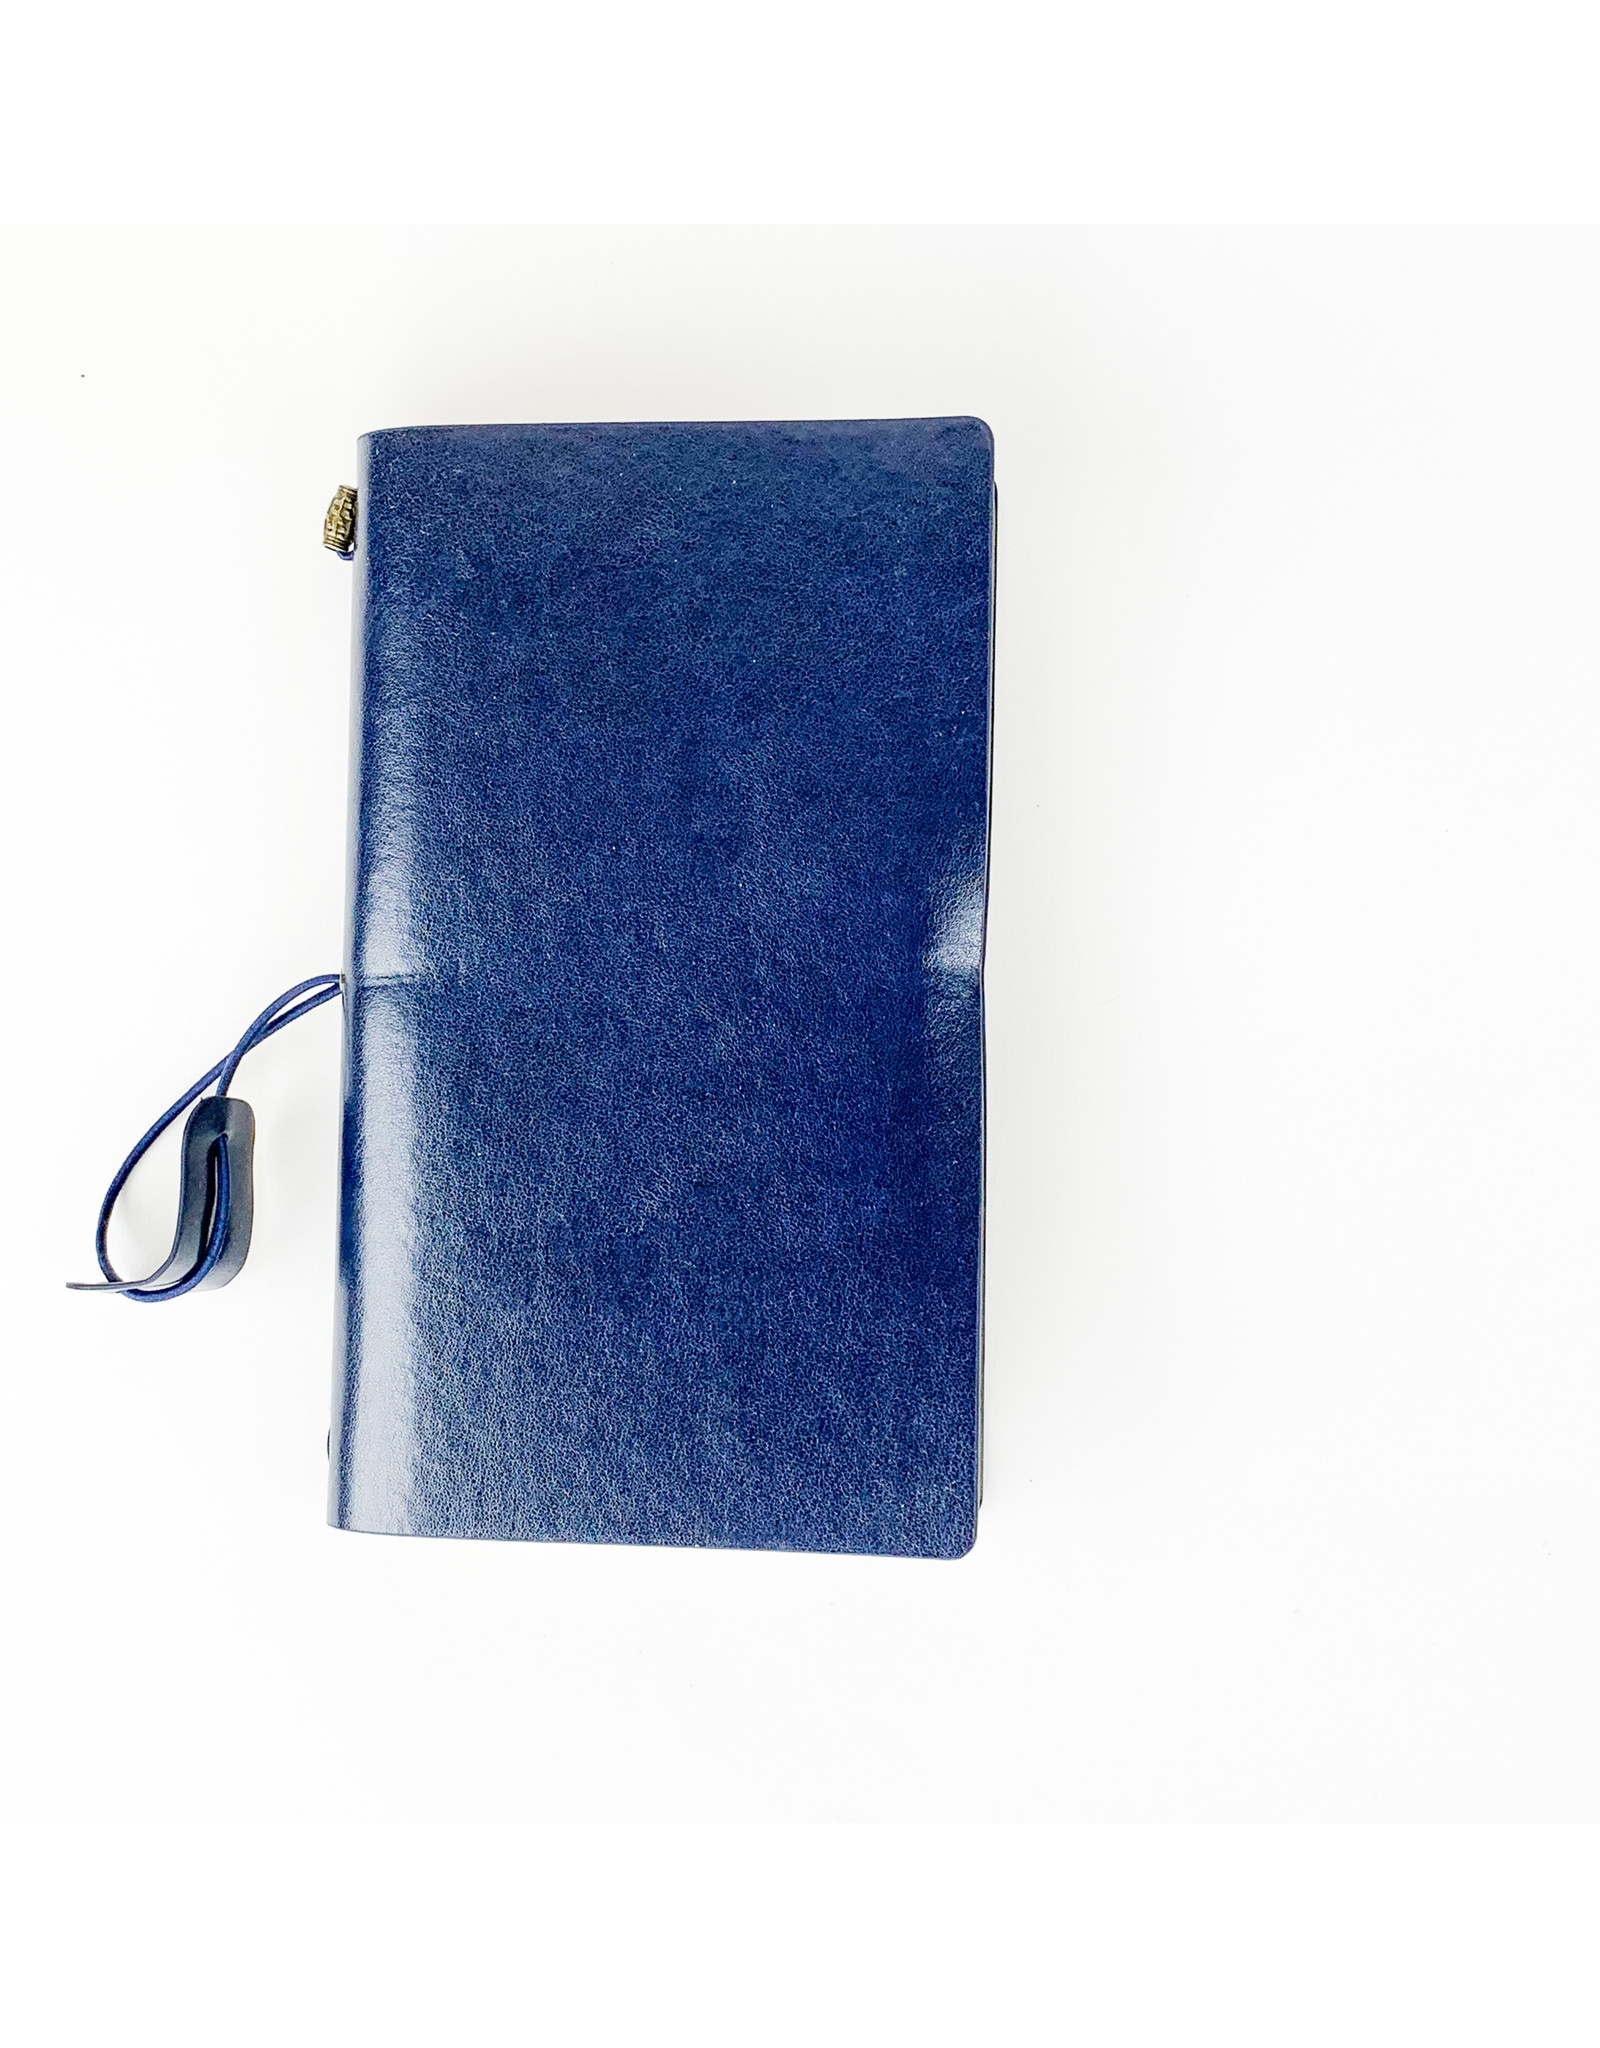 Peter Pauper Press Voyager Midnight Journal